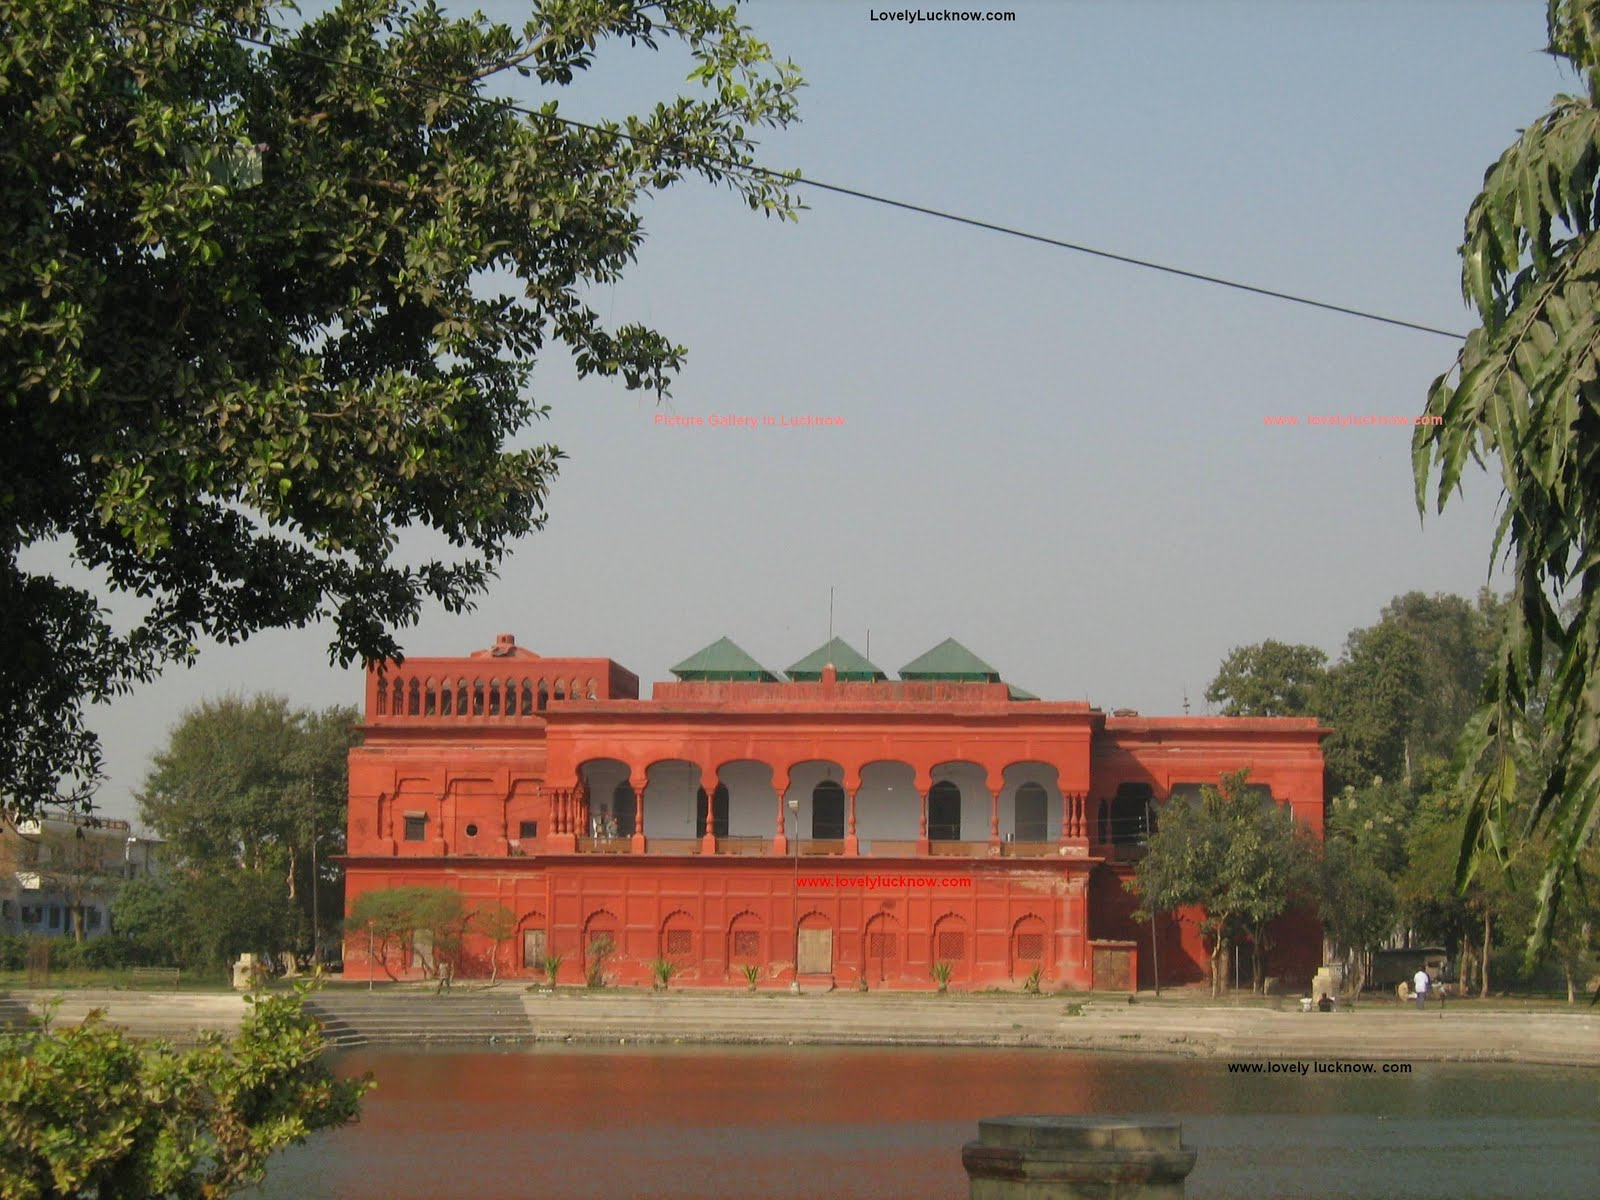 Hussainabad Picture Gallery Lucknow, Lucknow Photos, Pictures, Images: Hussainabad Picture Gallery, Lucknow